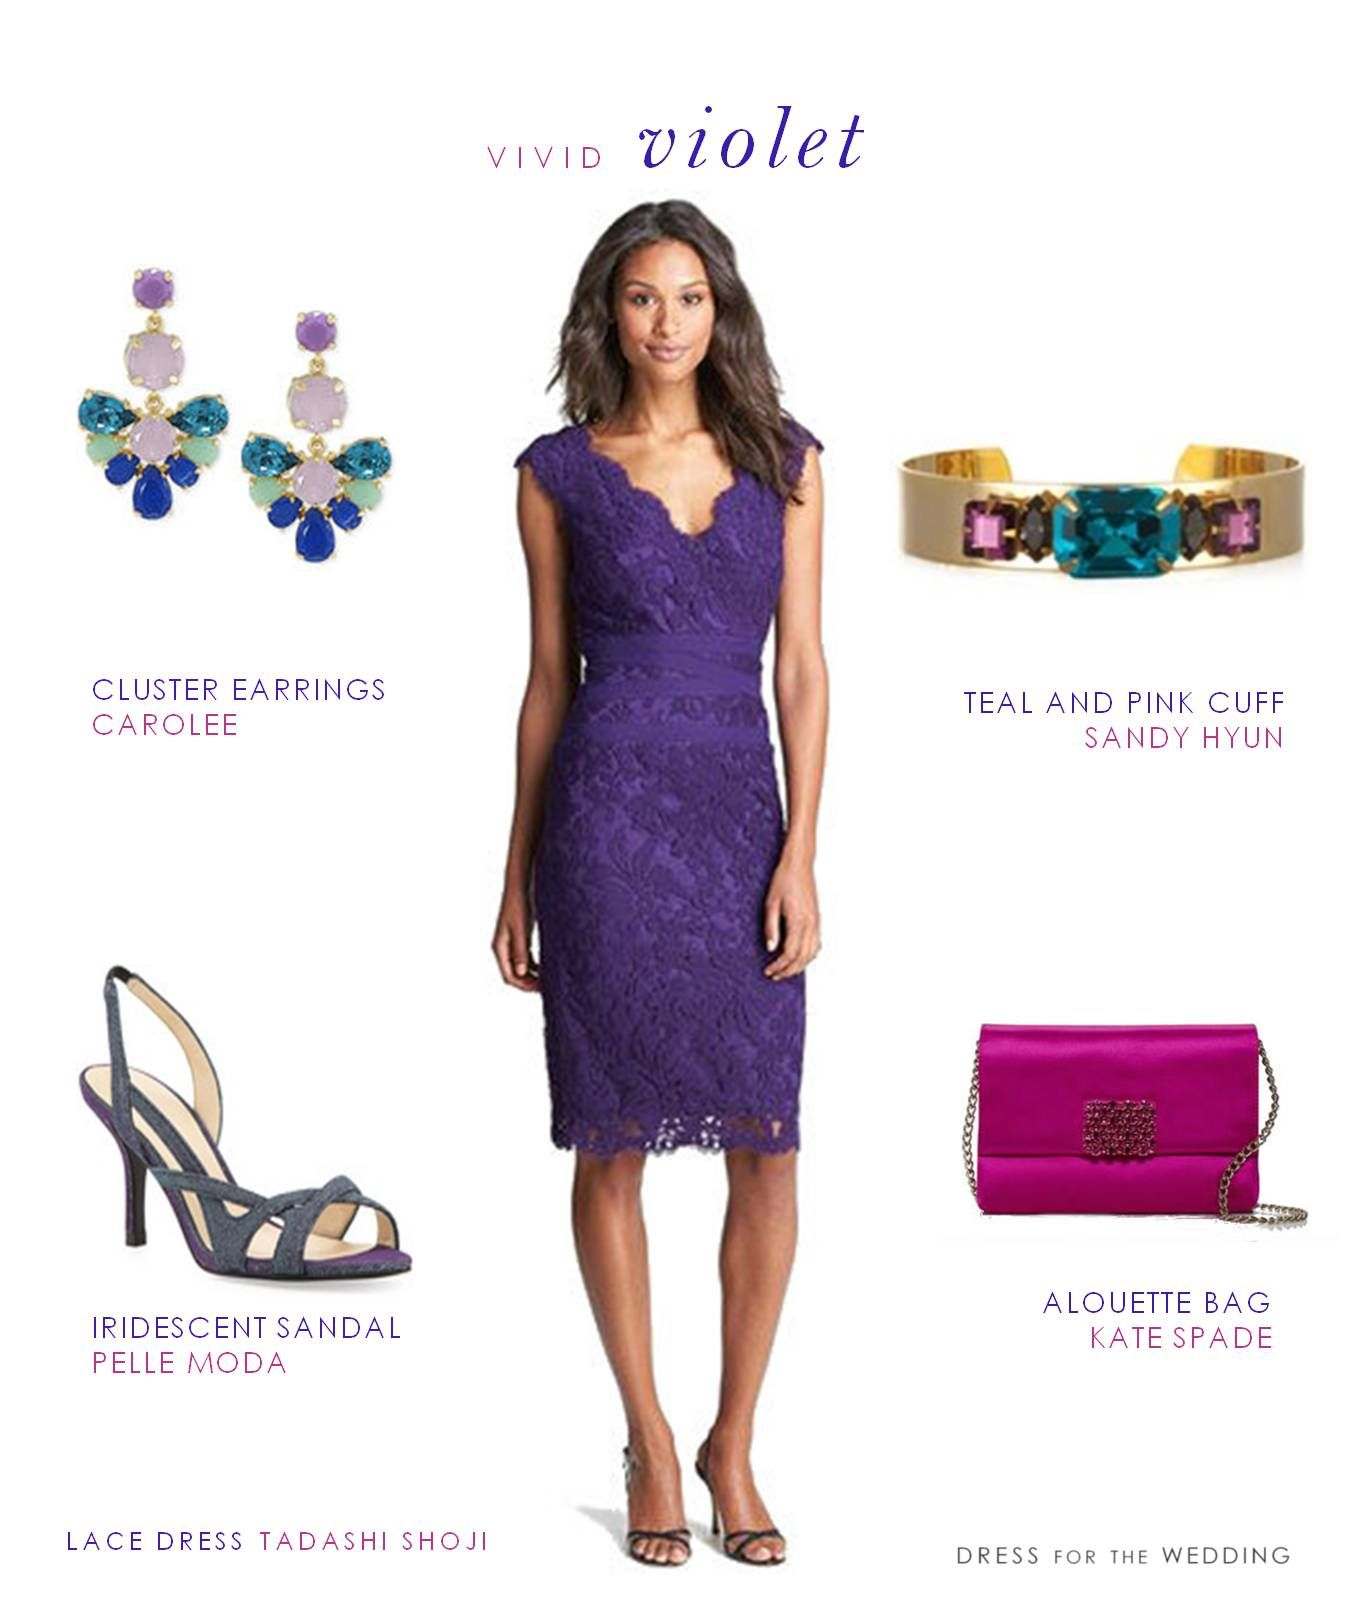 a purple lace dress for a wedding great for spring and summer weddings or as